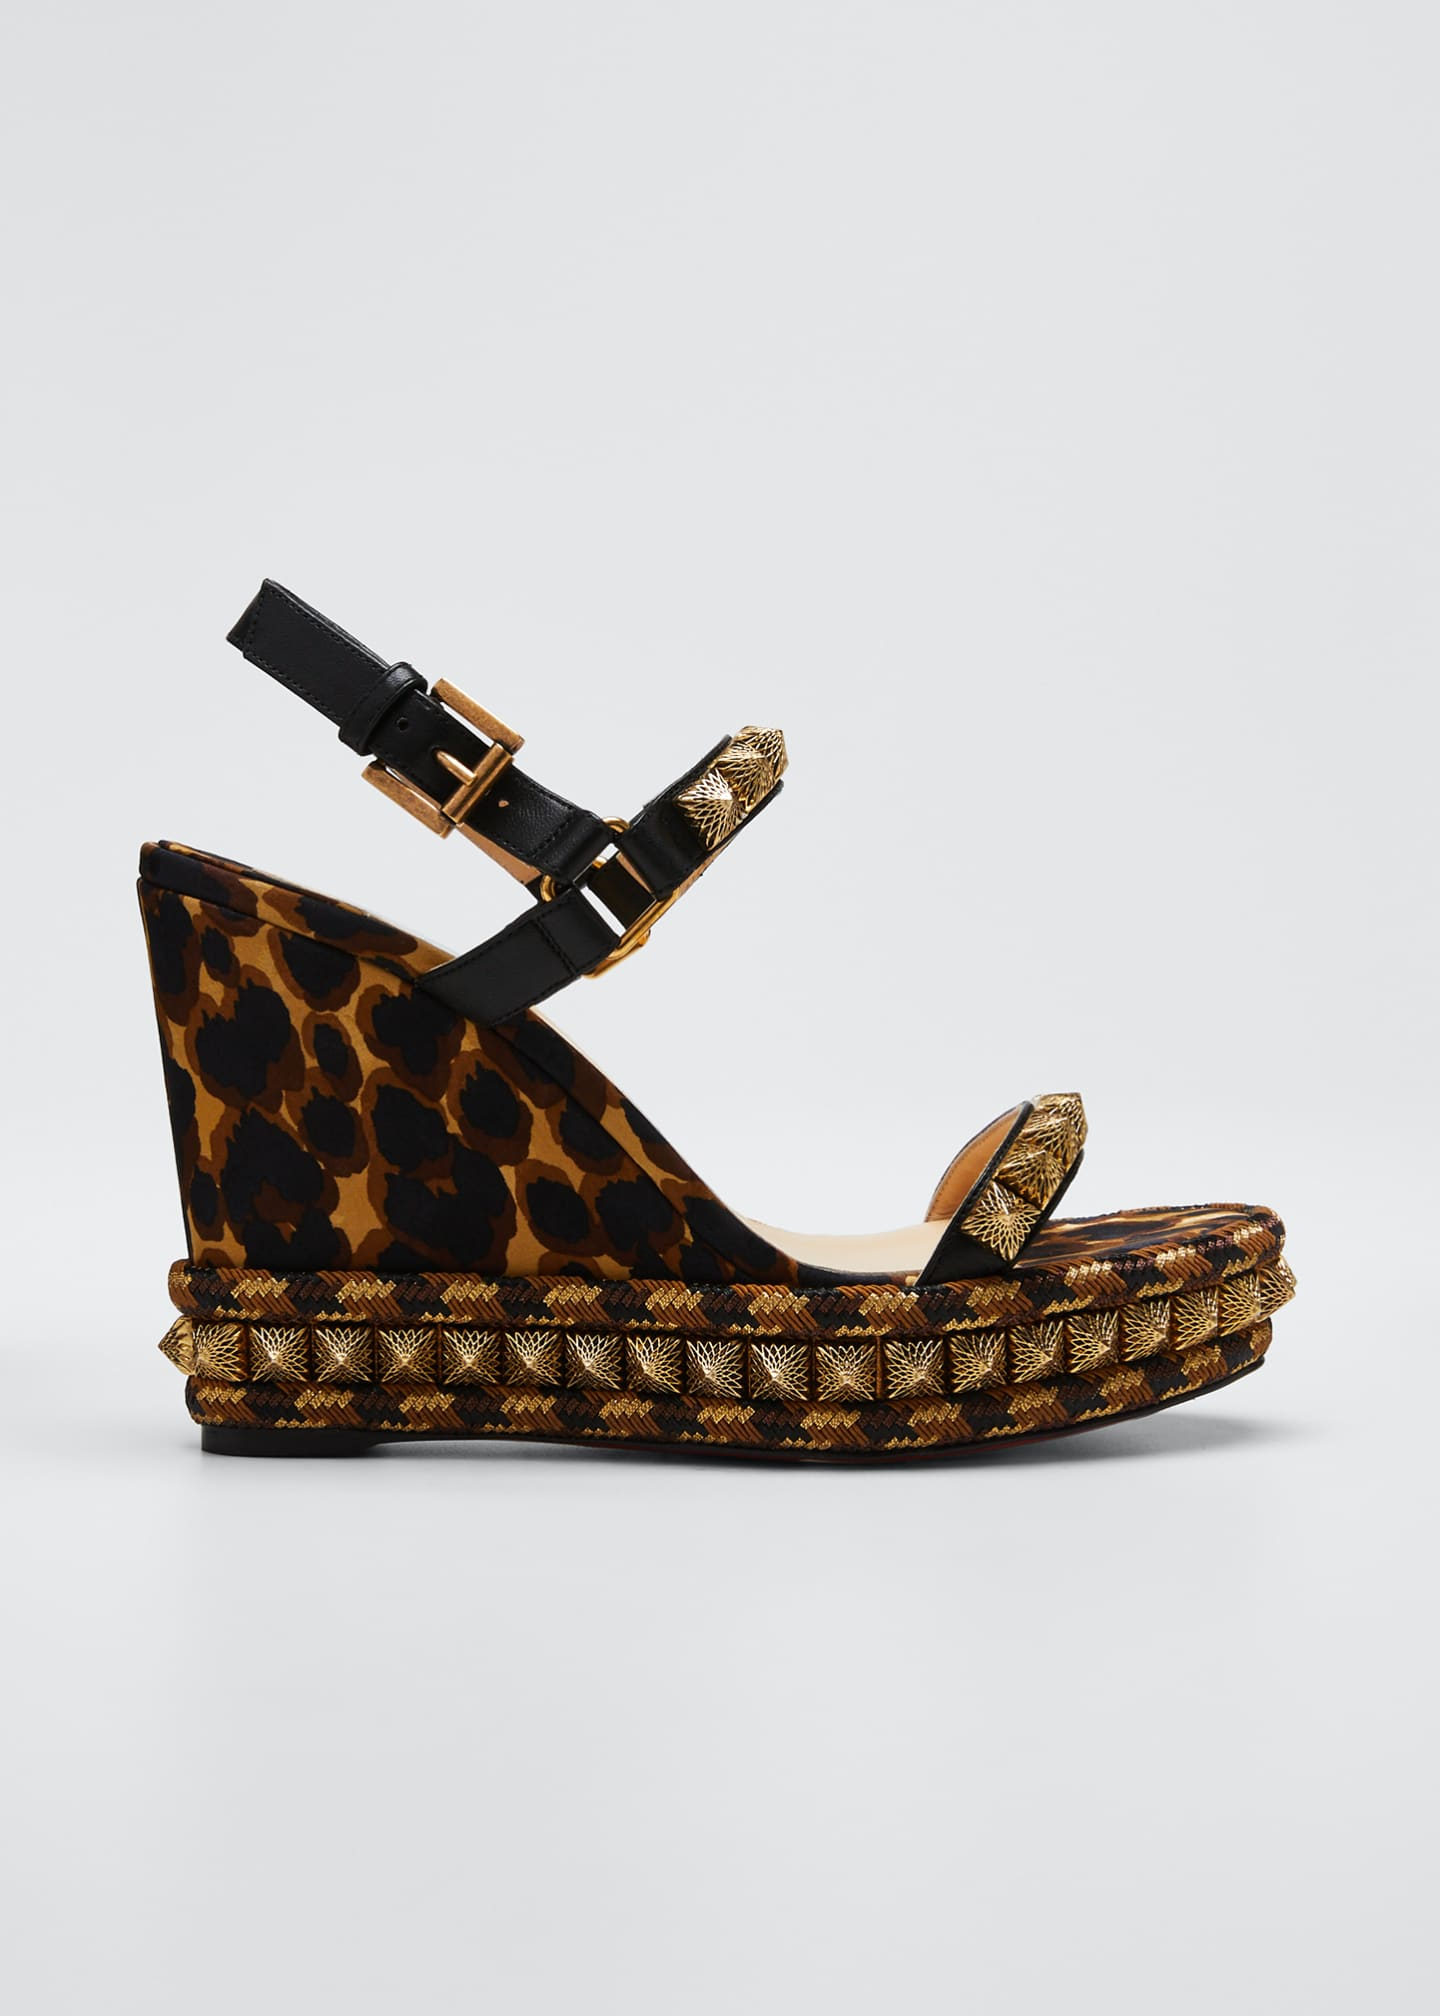 Christian Louboutin Pira Ryad Leopard Red Sole Espadrilles